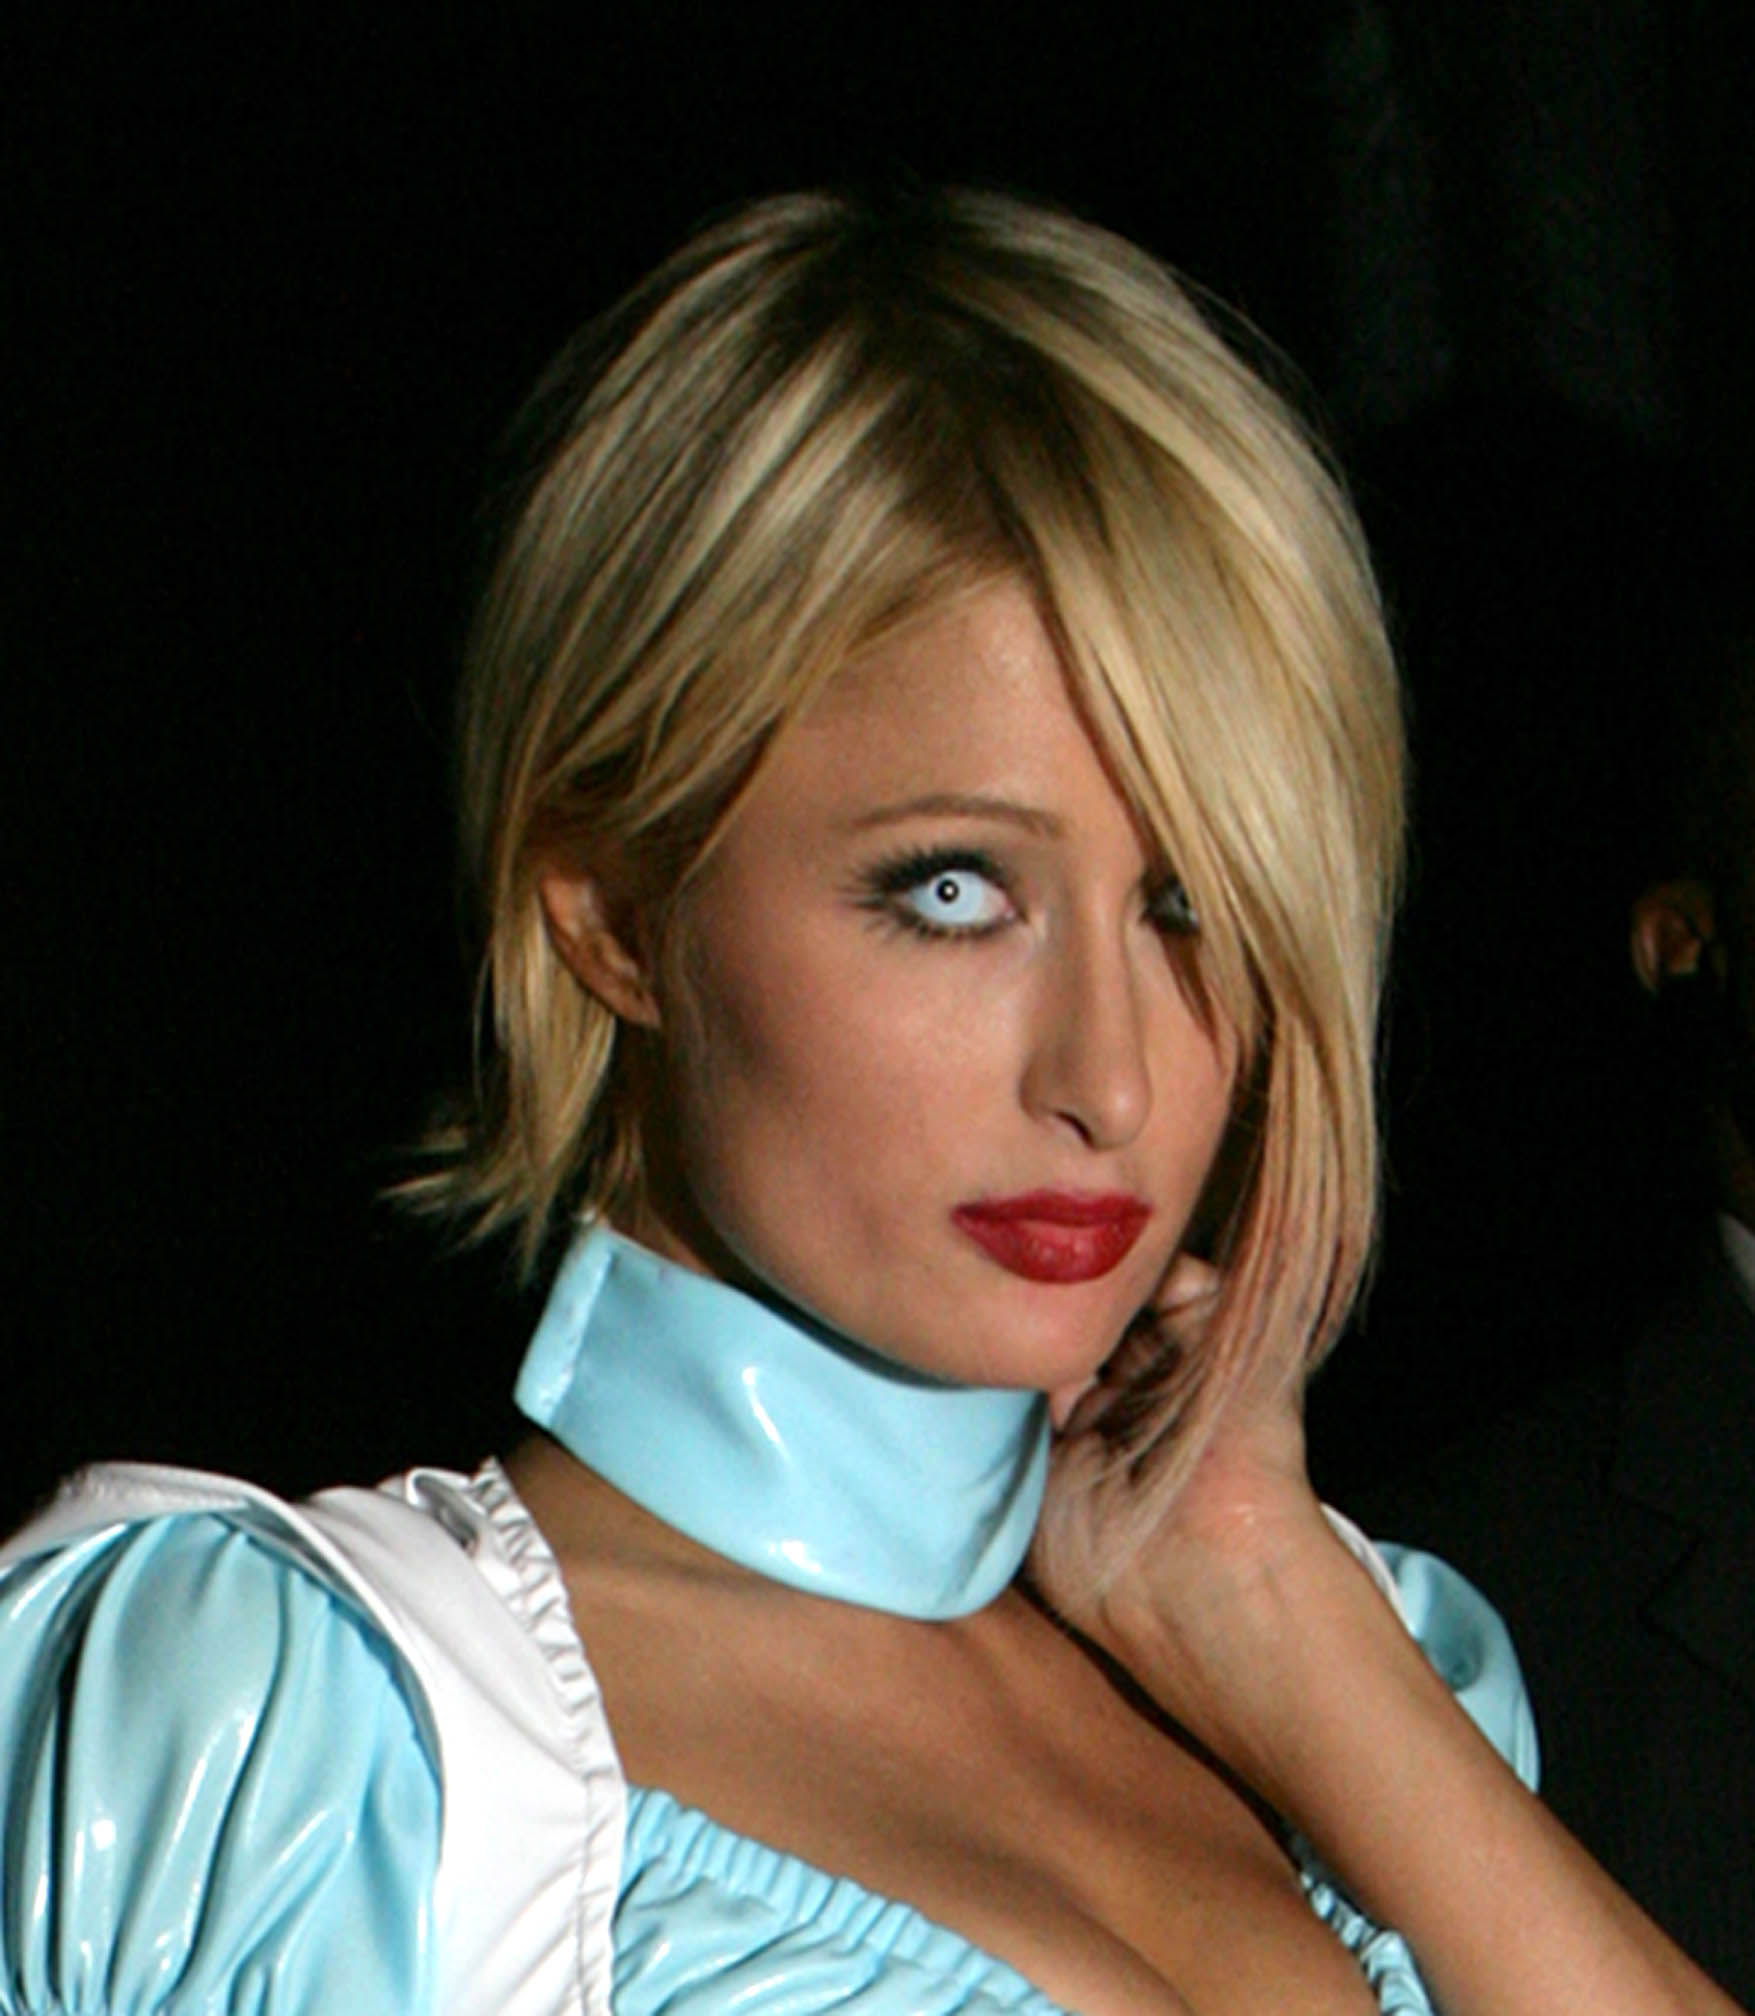 03974_celeb-city.eu_Paris_Hilton_at_the_Halloween_Party_in_Beverly_Hills_27.10.2007_04_123_63lo.jpg